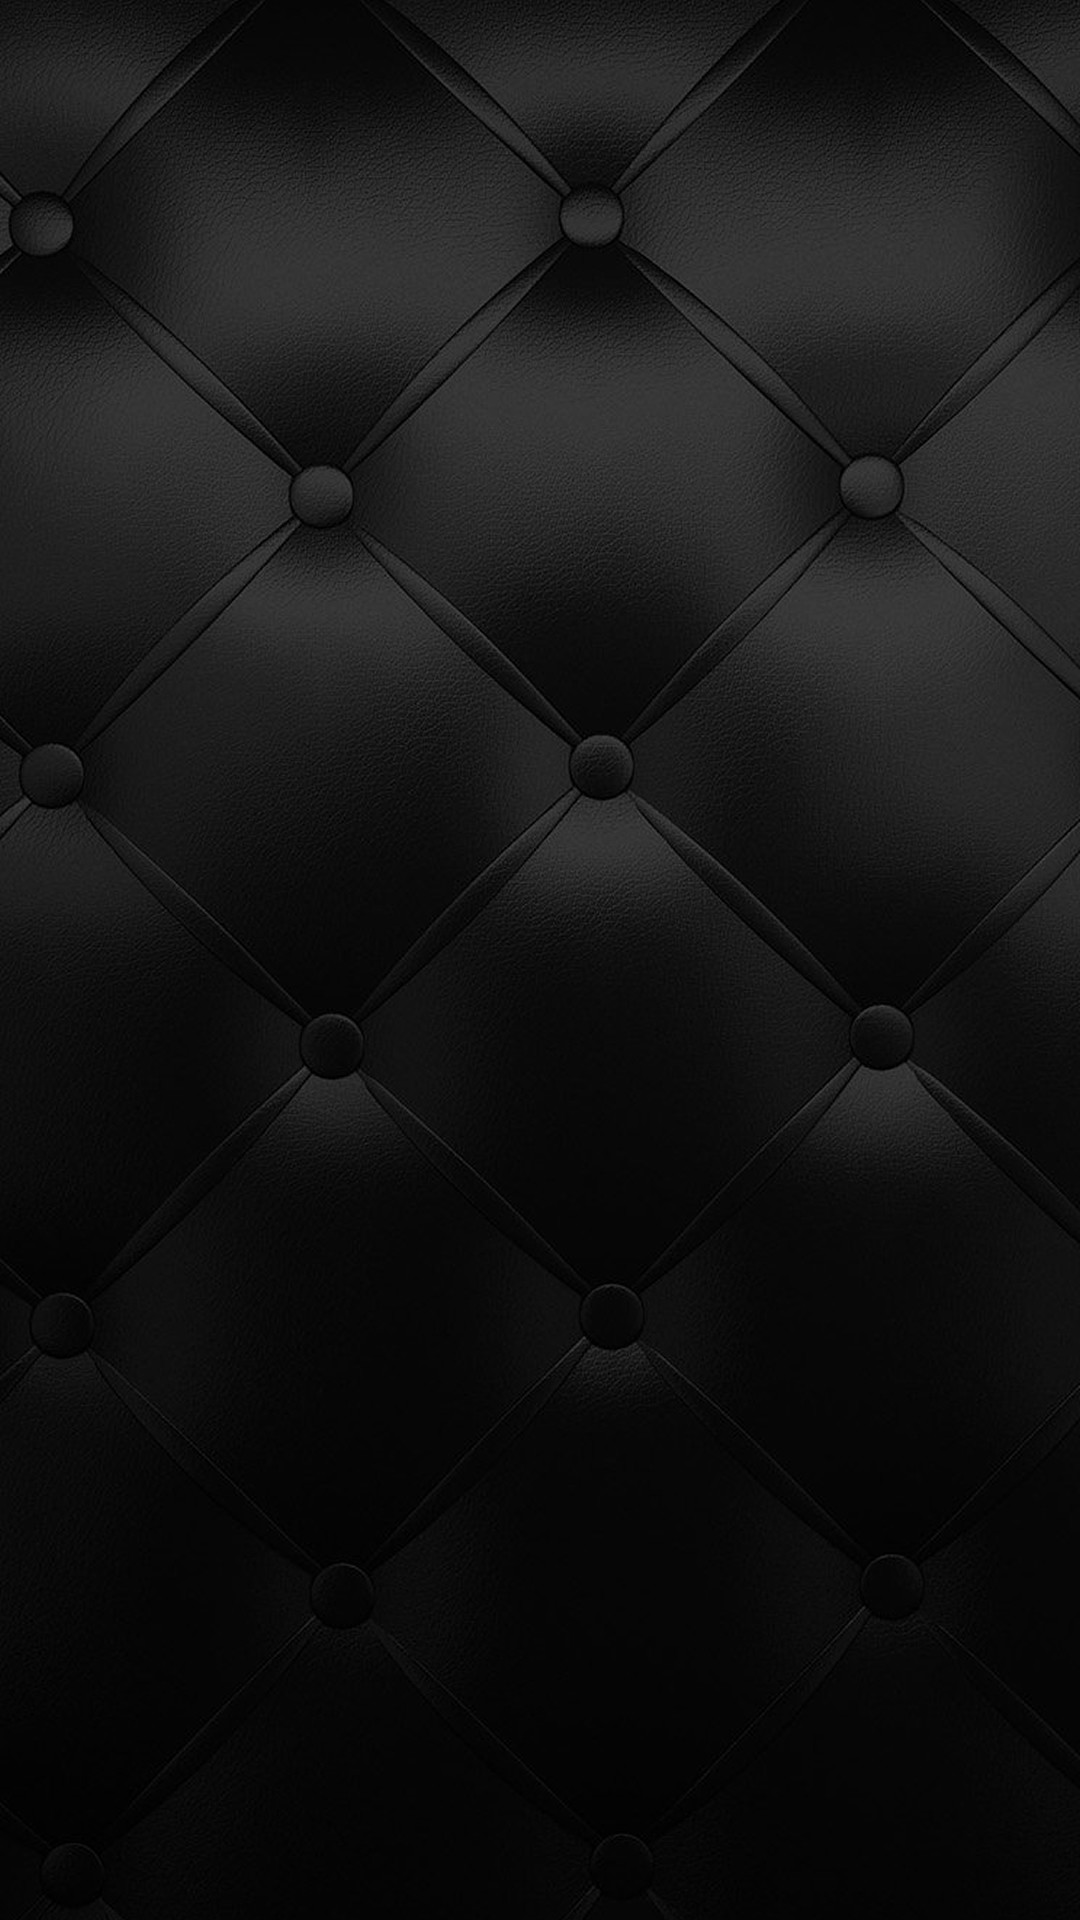 Iphone 6 Grid Wallpaper 80 Images